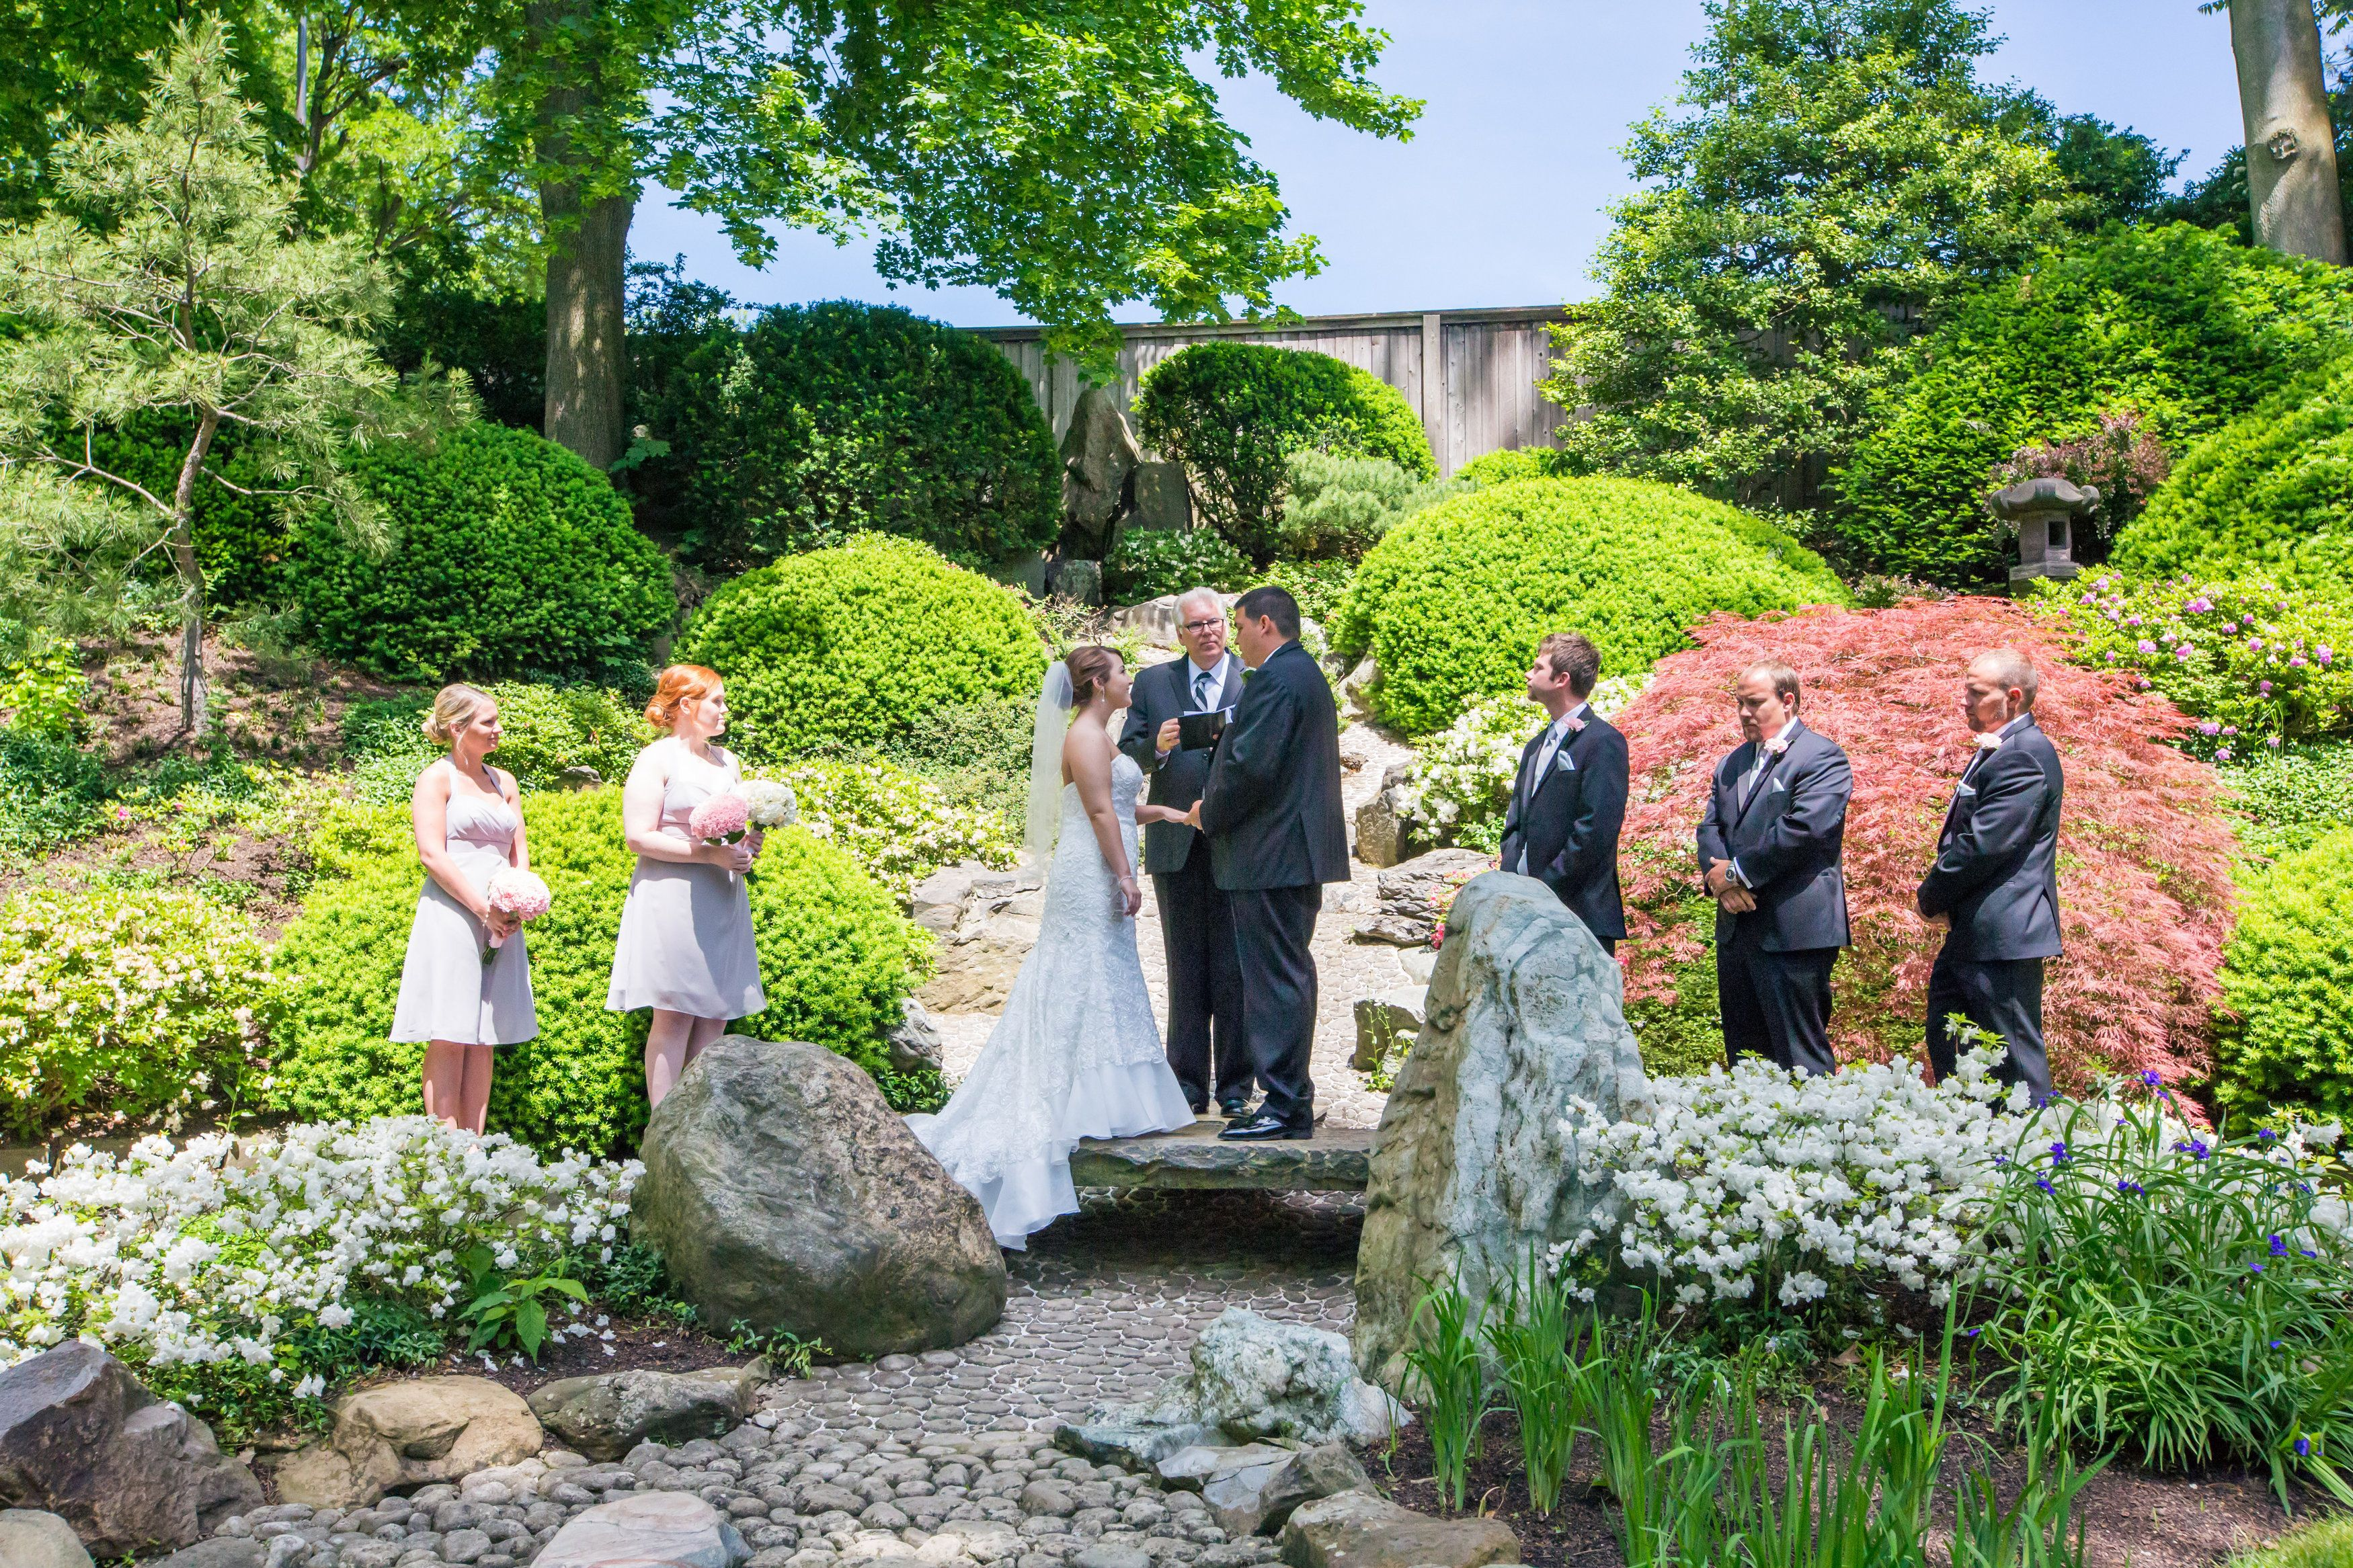 Downtown Cleveland, Ohio Wedding - Cleveland Botanical Gardens In The